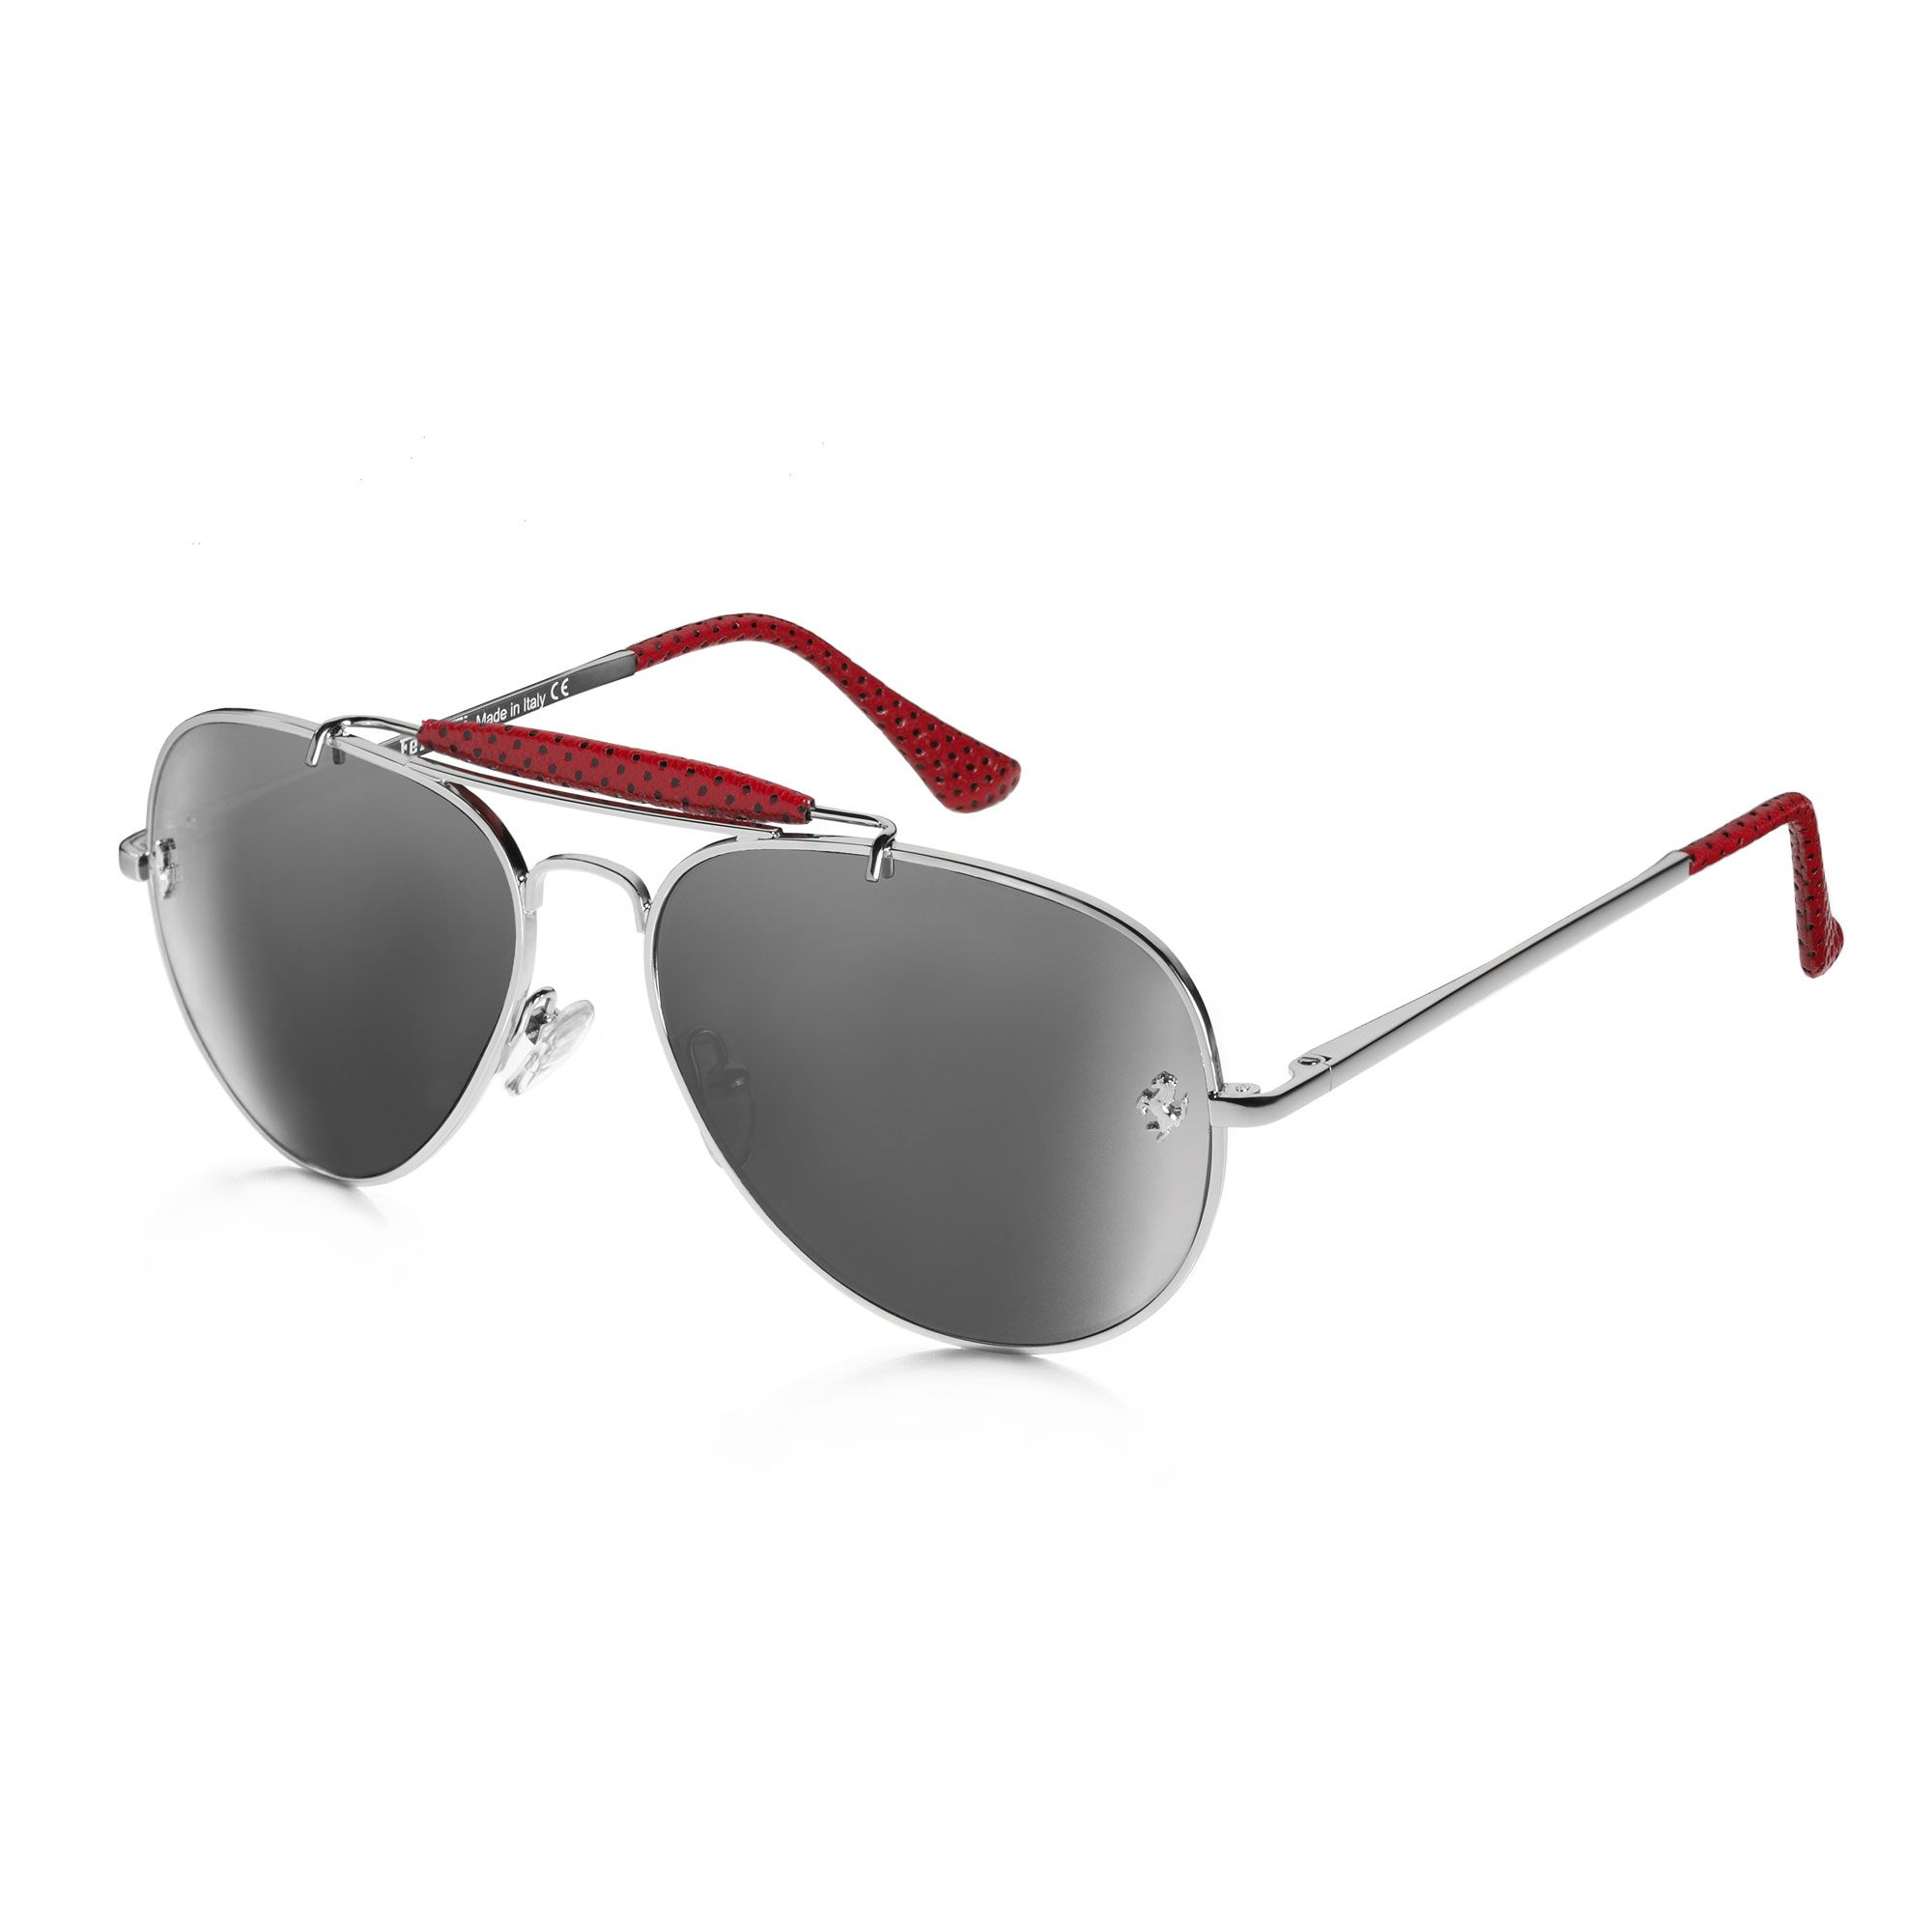 for sunglasses visual loft loading ferrari category to product add wishlist men